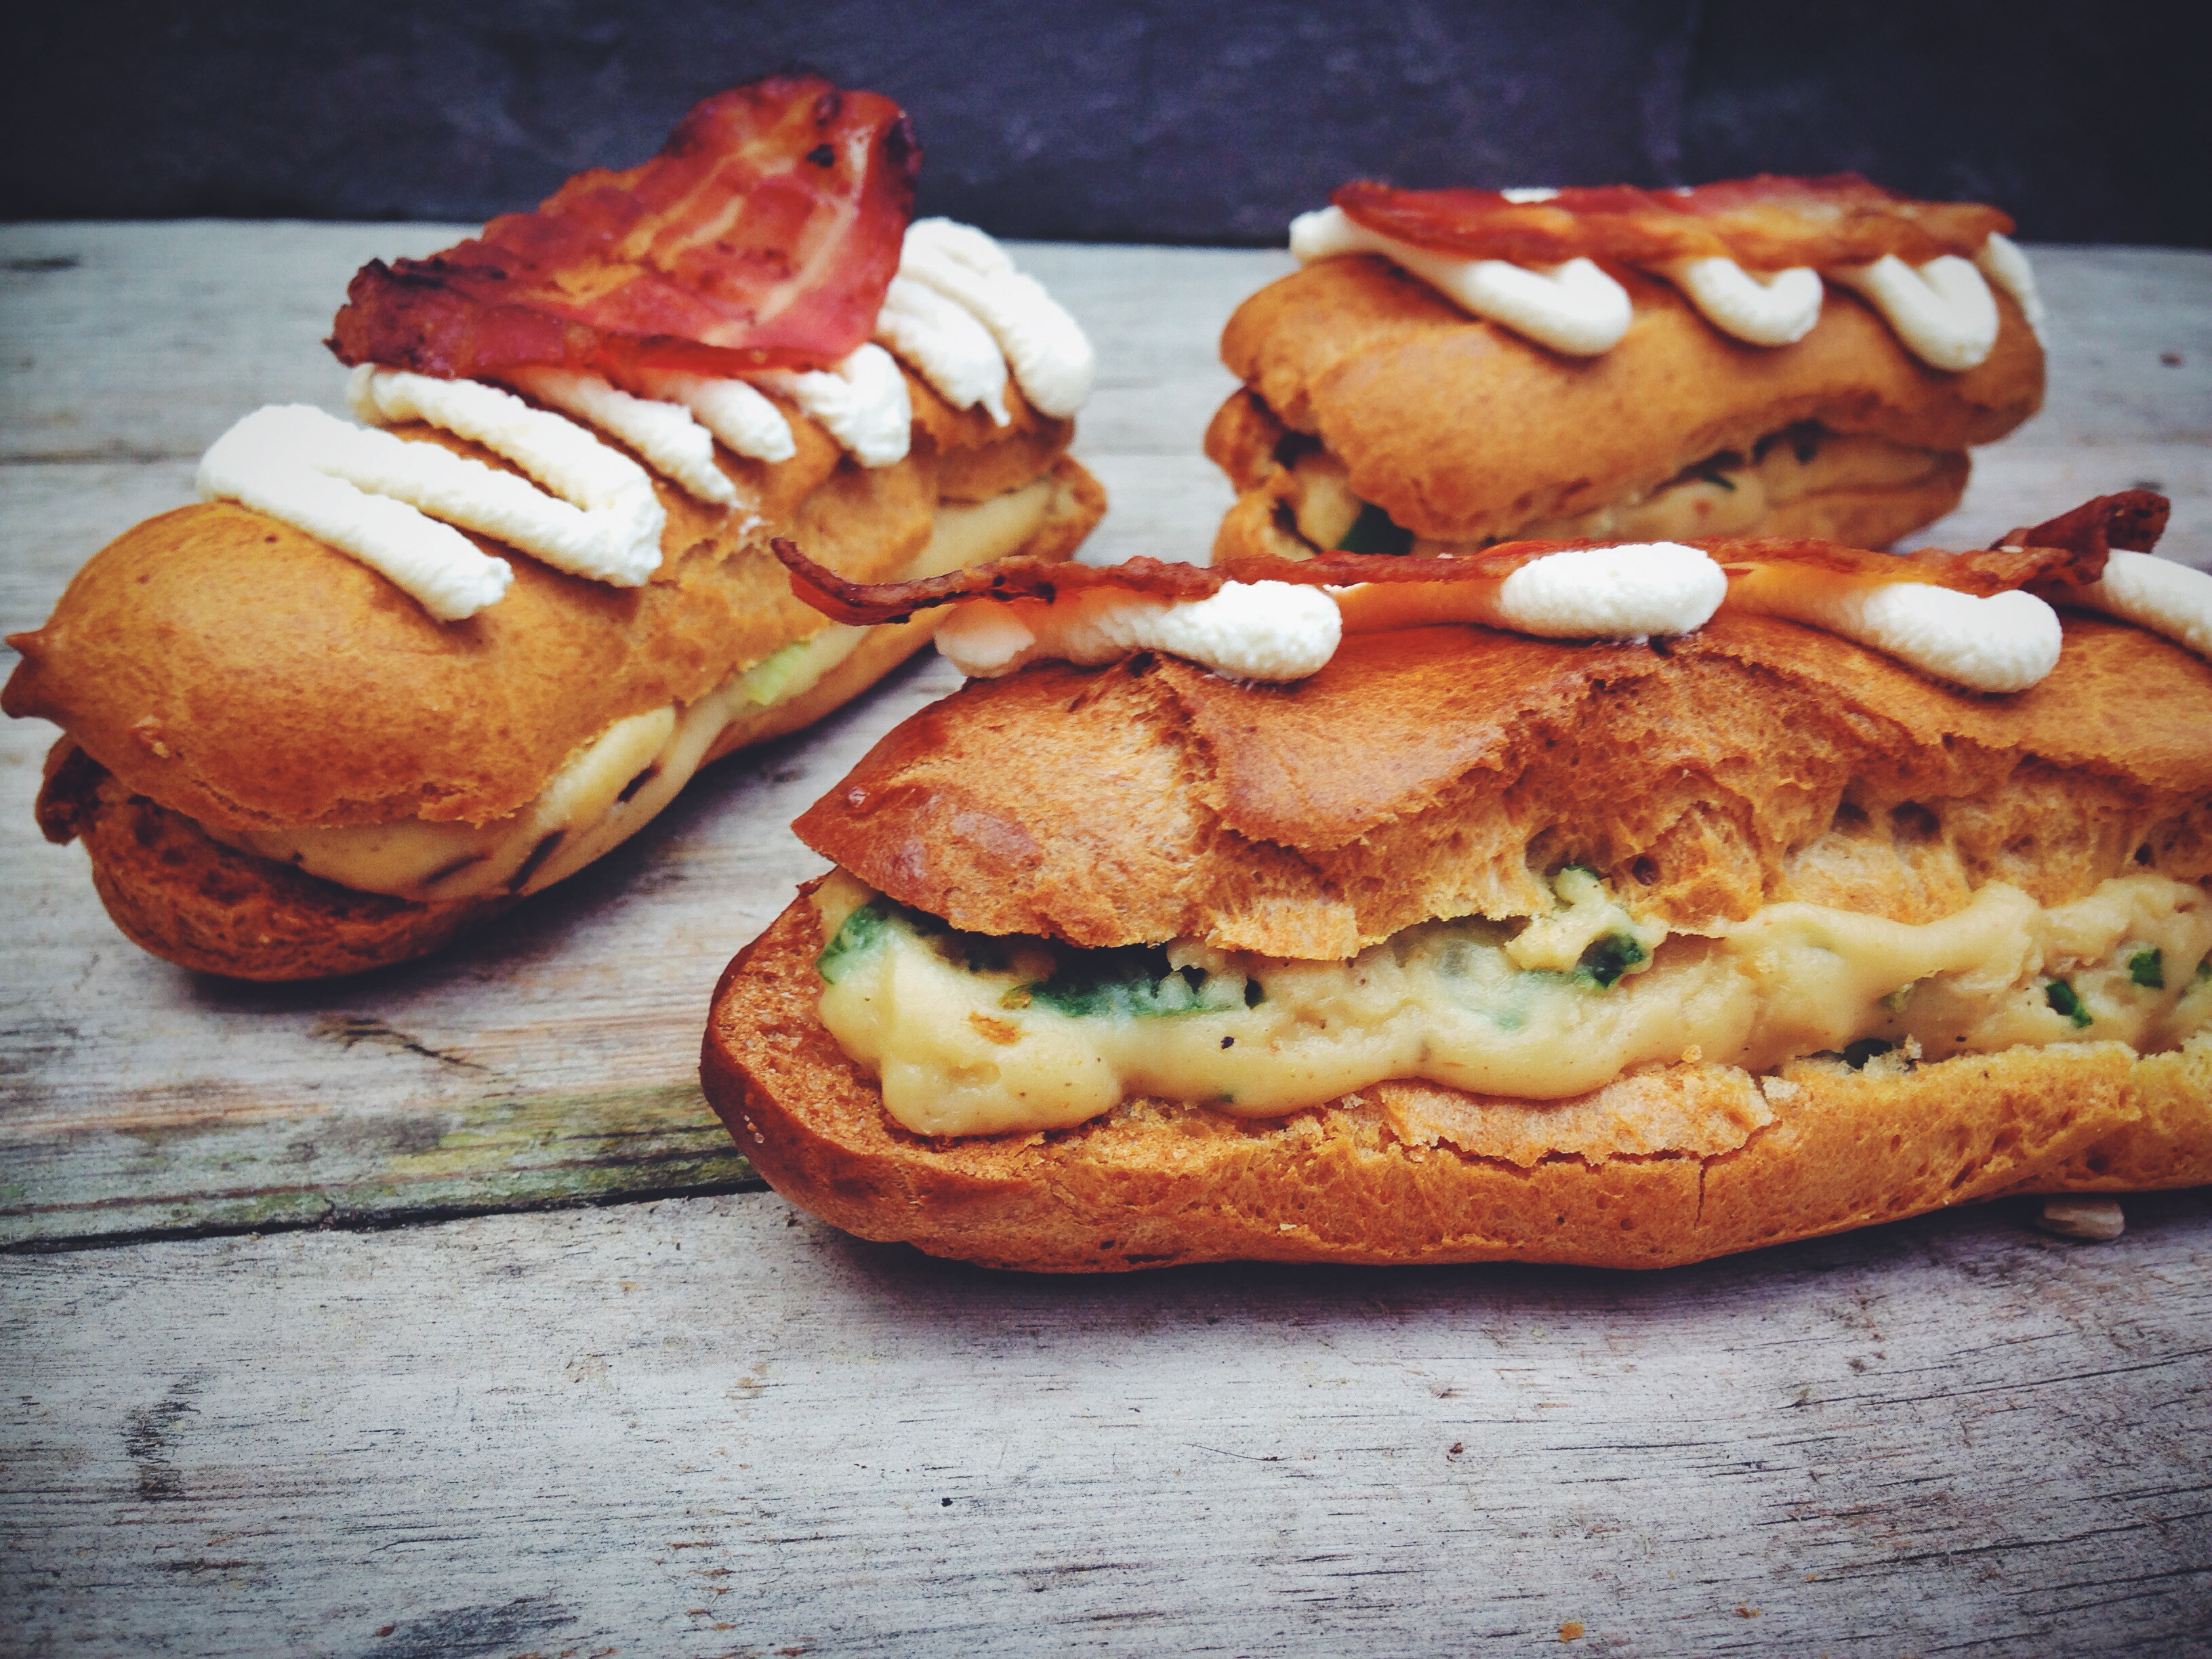 Great British Bake Off recipe: Mushroom, cheese and bacon eclairs, oh yes!